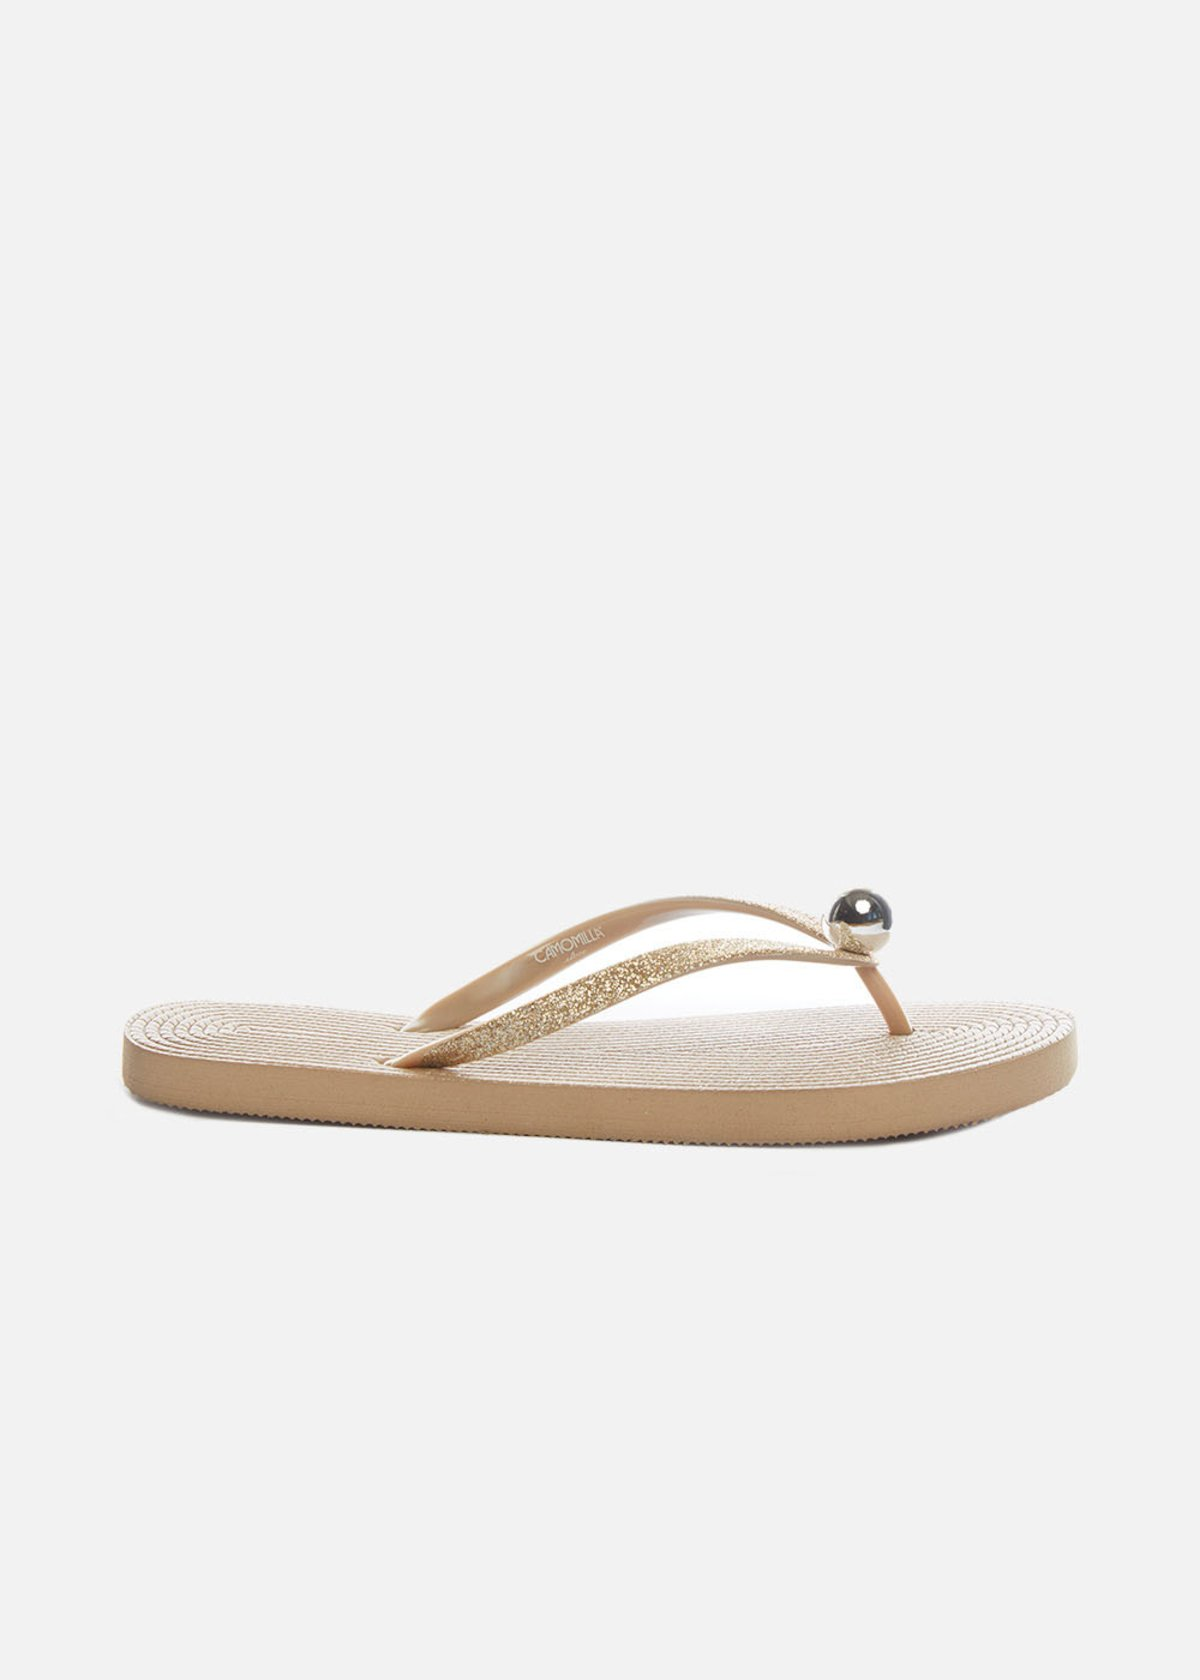 Coselia flip flops with ball detail - Gold